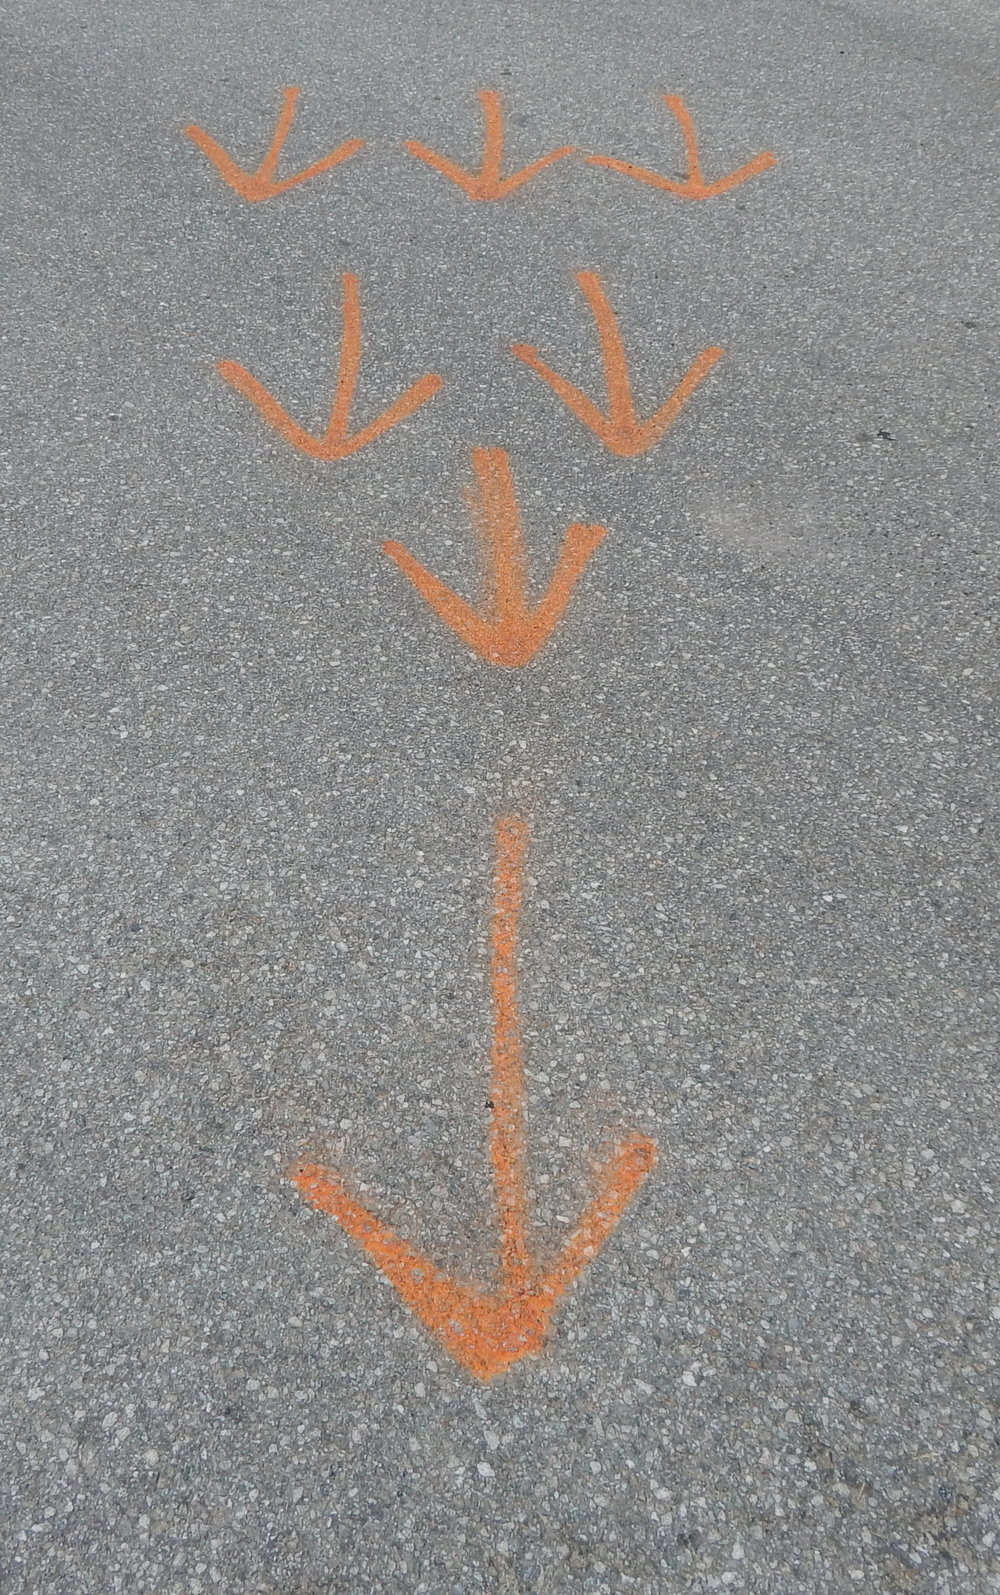 Seven Orange Arrows.JPG